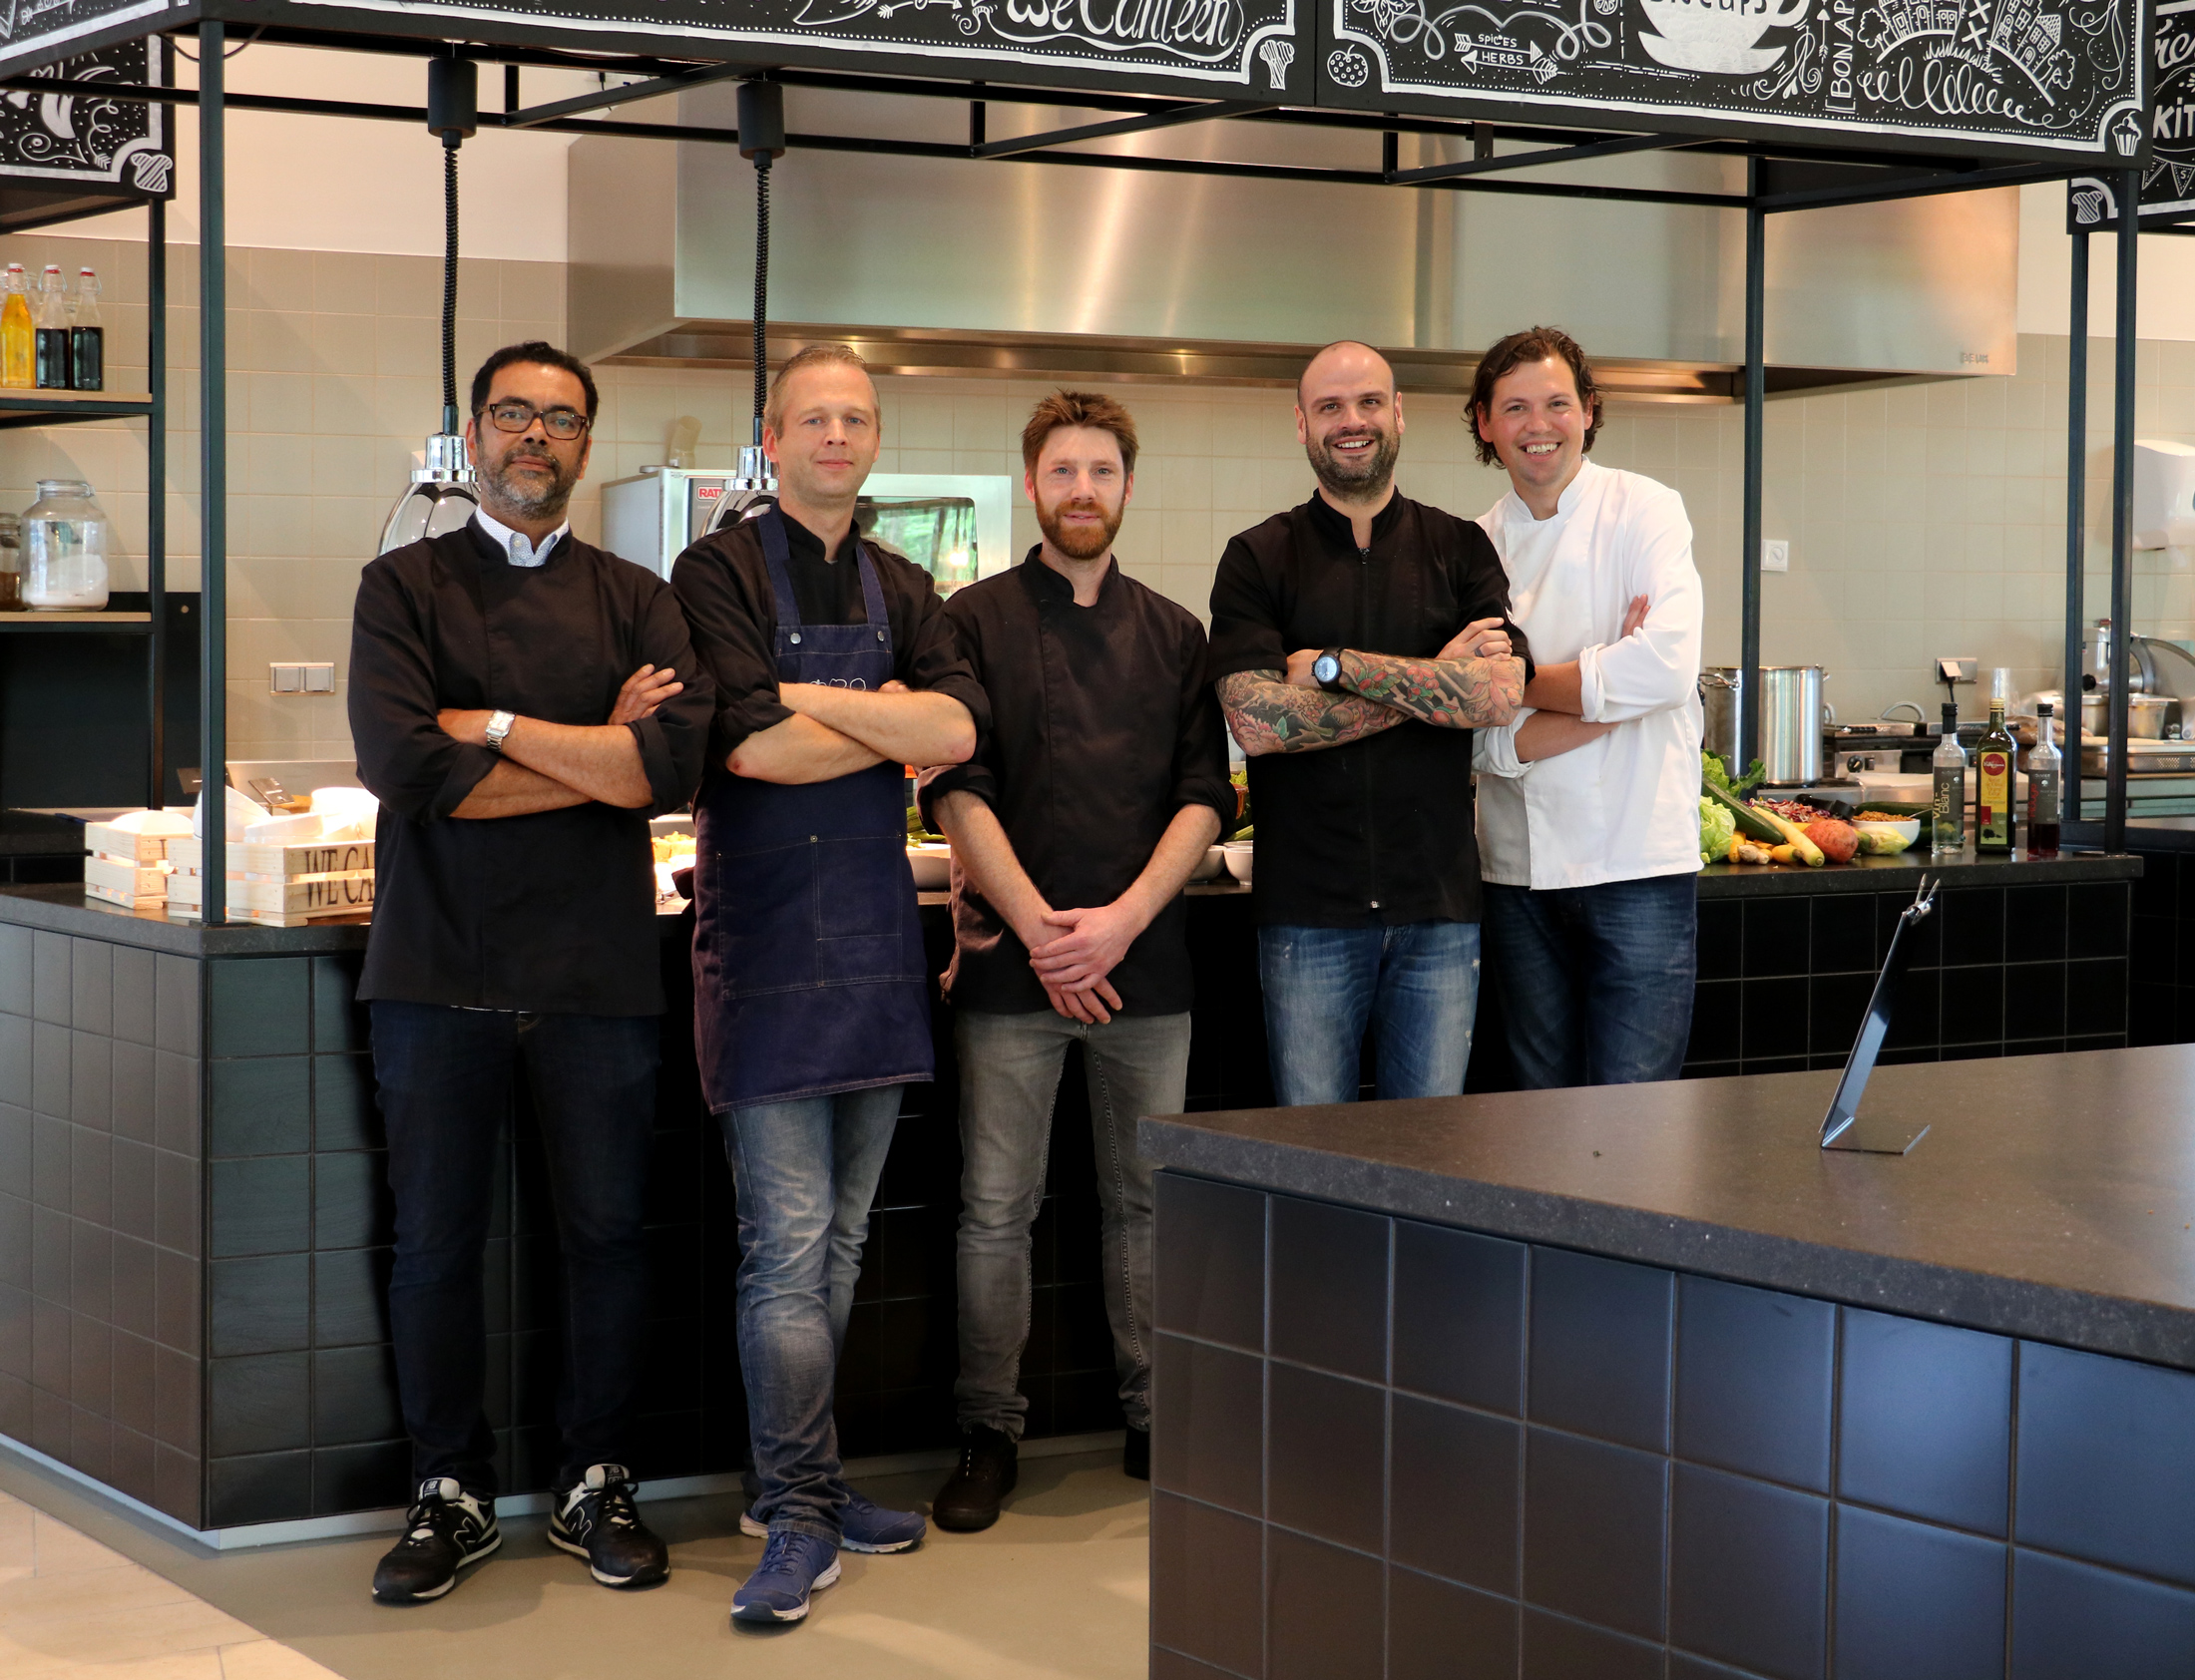 Chefs van We Canteen op Masterclass in Heempark